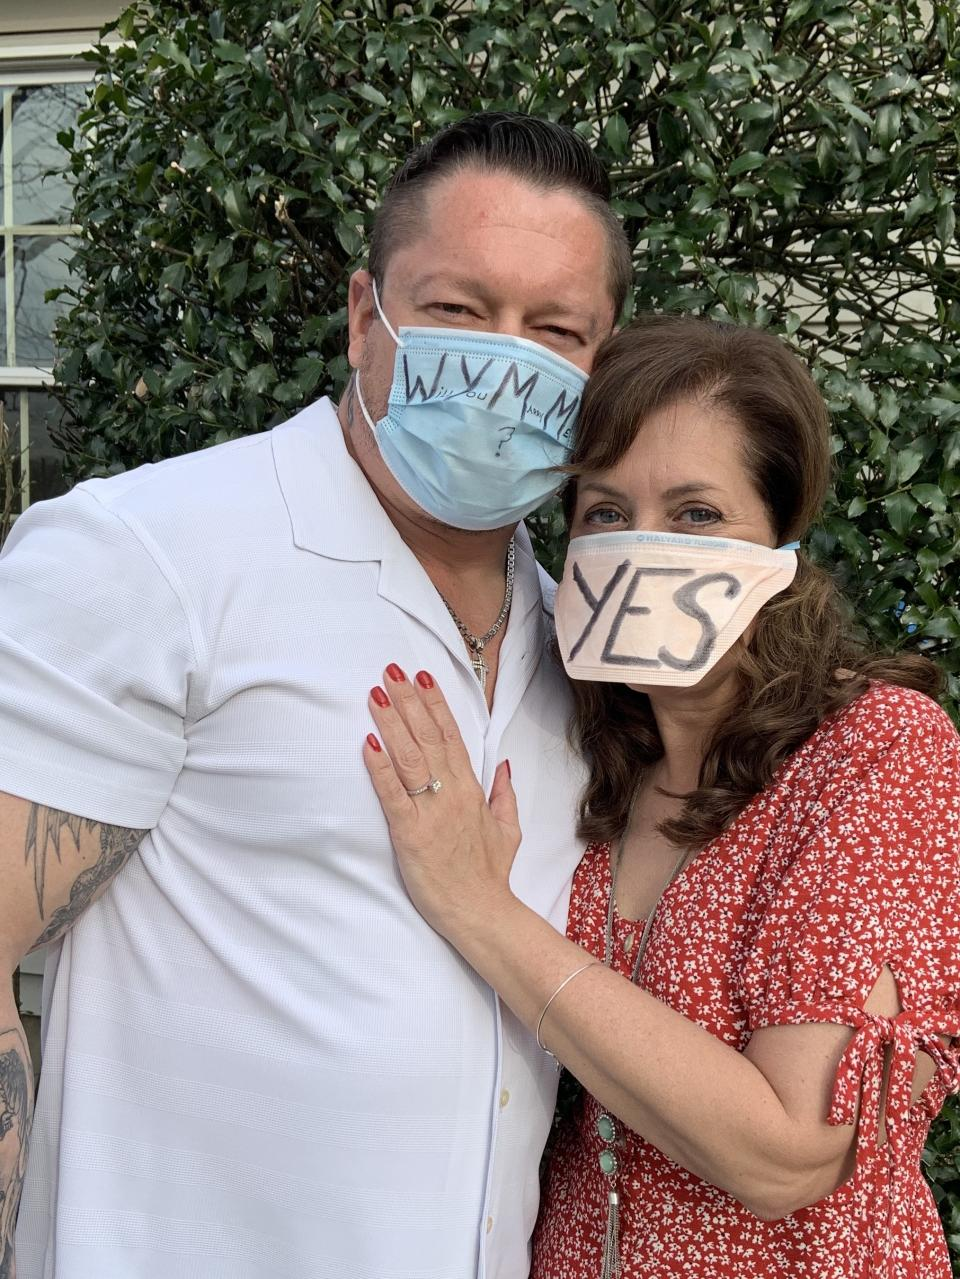 """Police Lieutenant Danny Sienkiewicz proposed to his girlfriend Beth Salamon on April 11th by writing """"Will You Marry Me?"""" on his N95 mask as he served her breakfast in bed. (Photo: Beth Salamon)"""